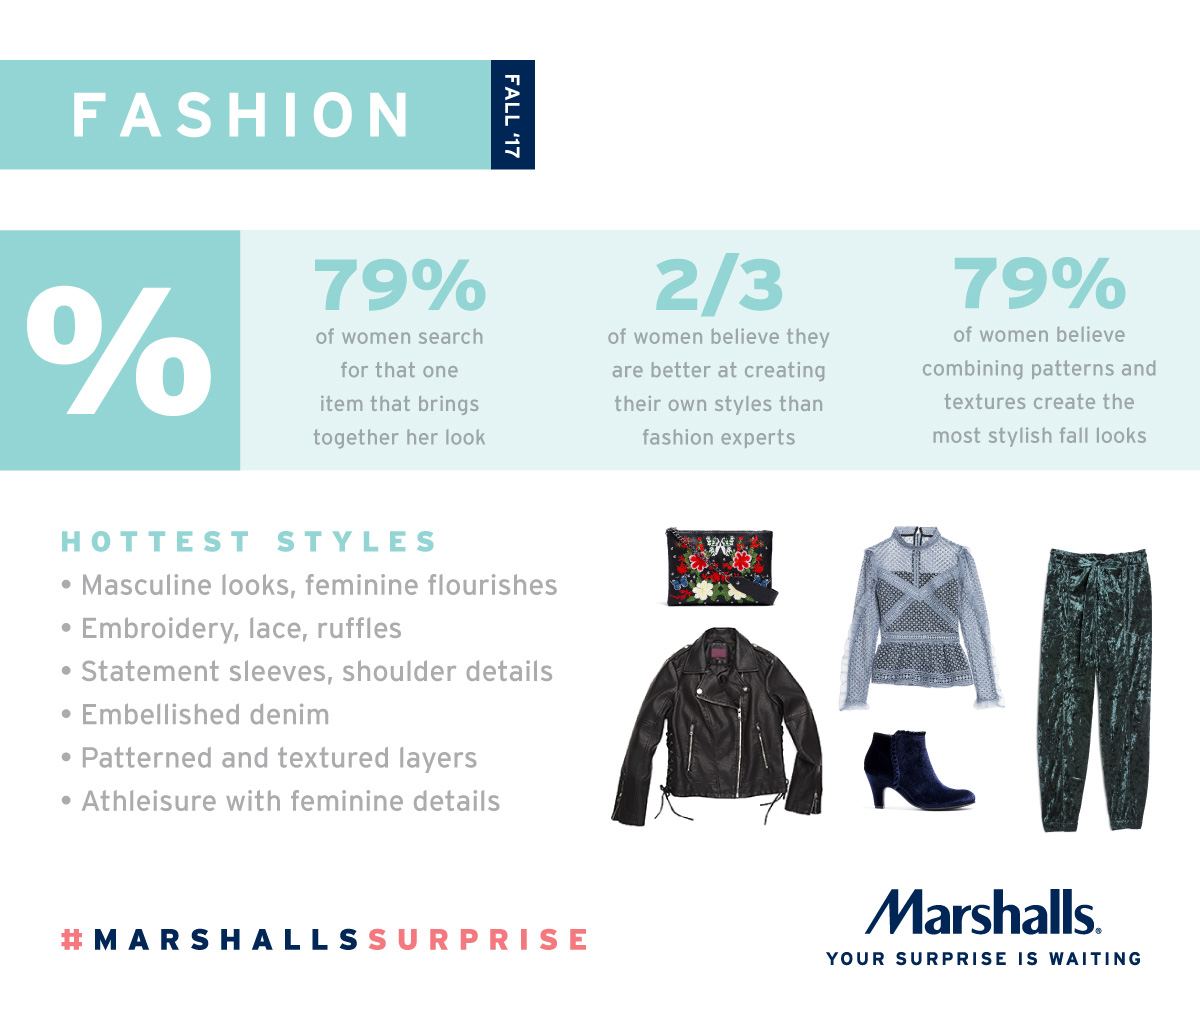 Marshalls reveals surprising statistics on what women are thinking about Fall 2017 trends.